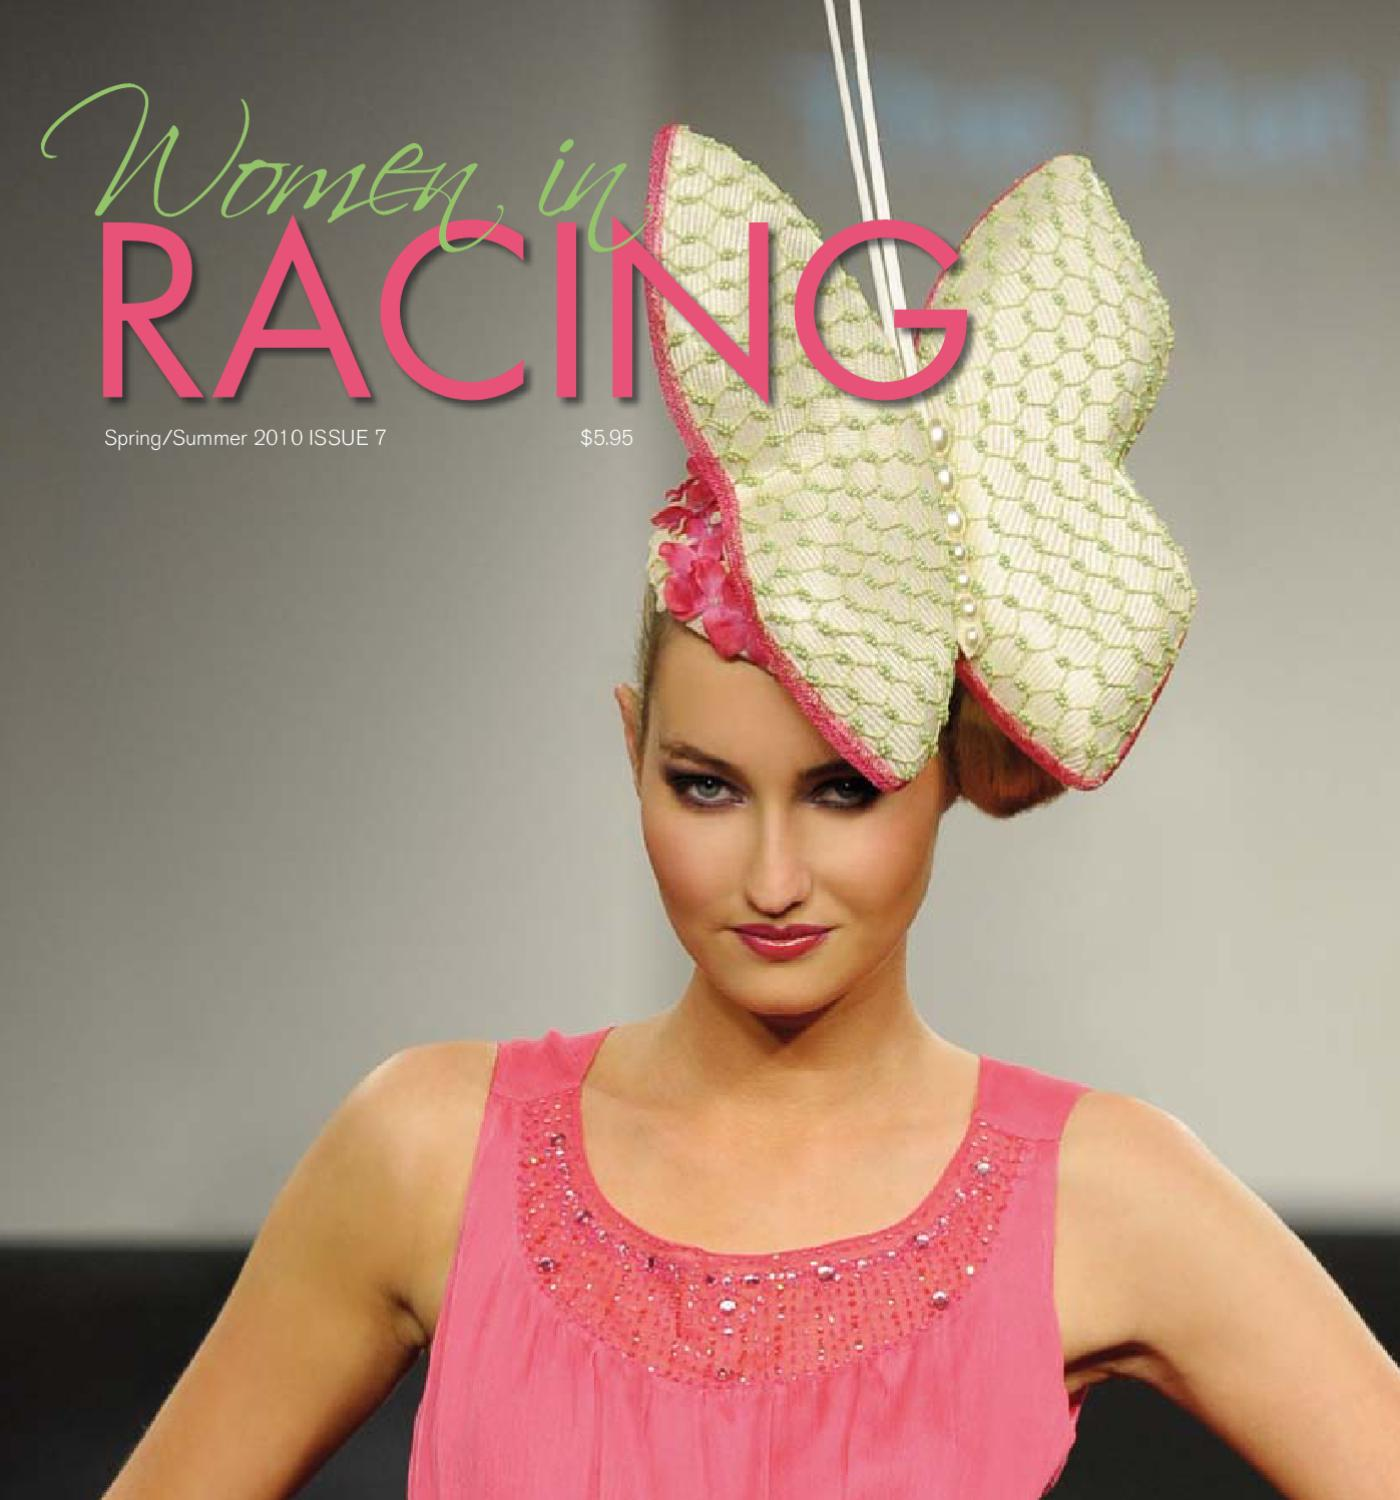 98f999c1373 Women in RACING Magazine Spring Summer 2010 Issue 7 by Ladies in SPORT  Publications - issuu